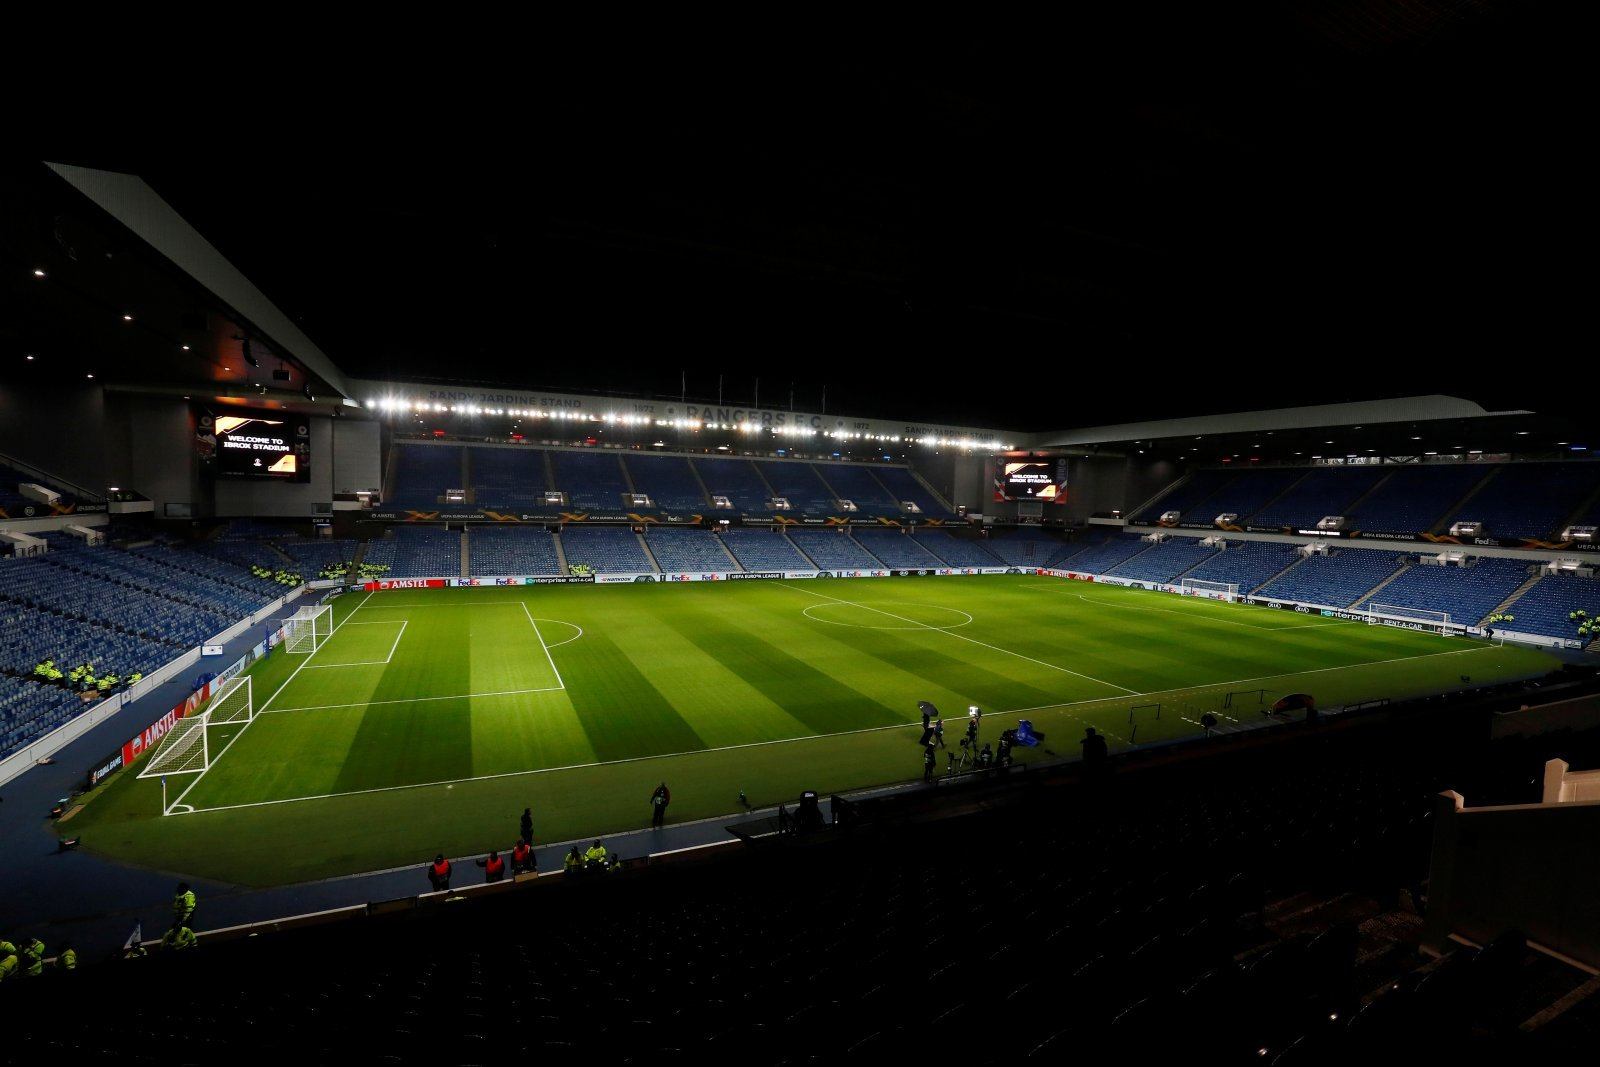 Rangers comment on SFA child abuse report